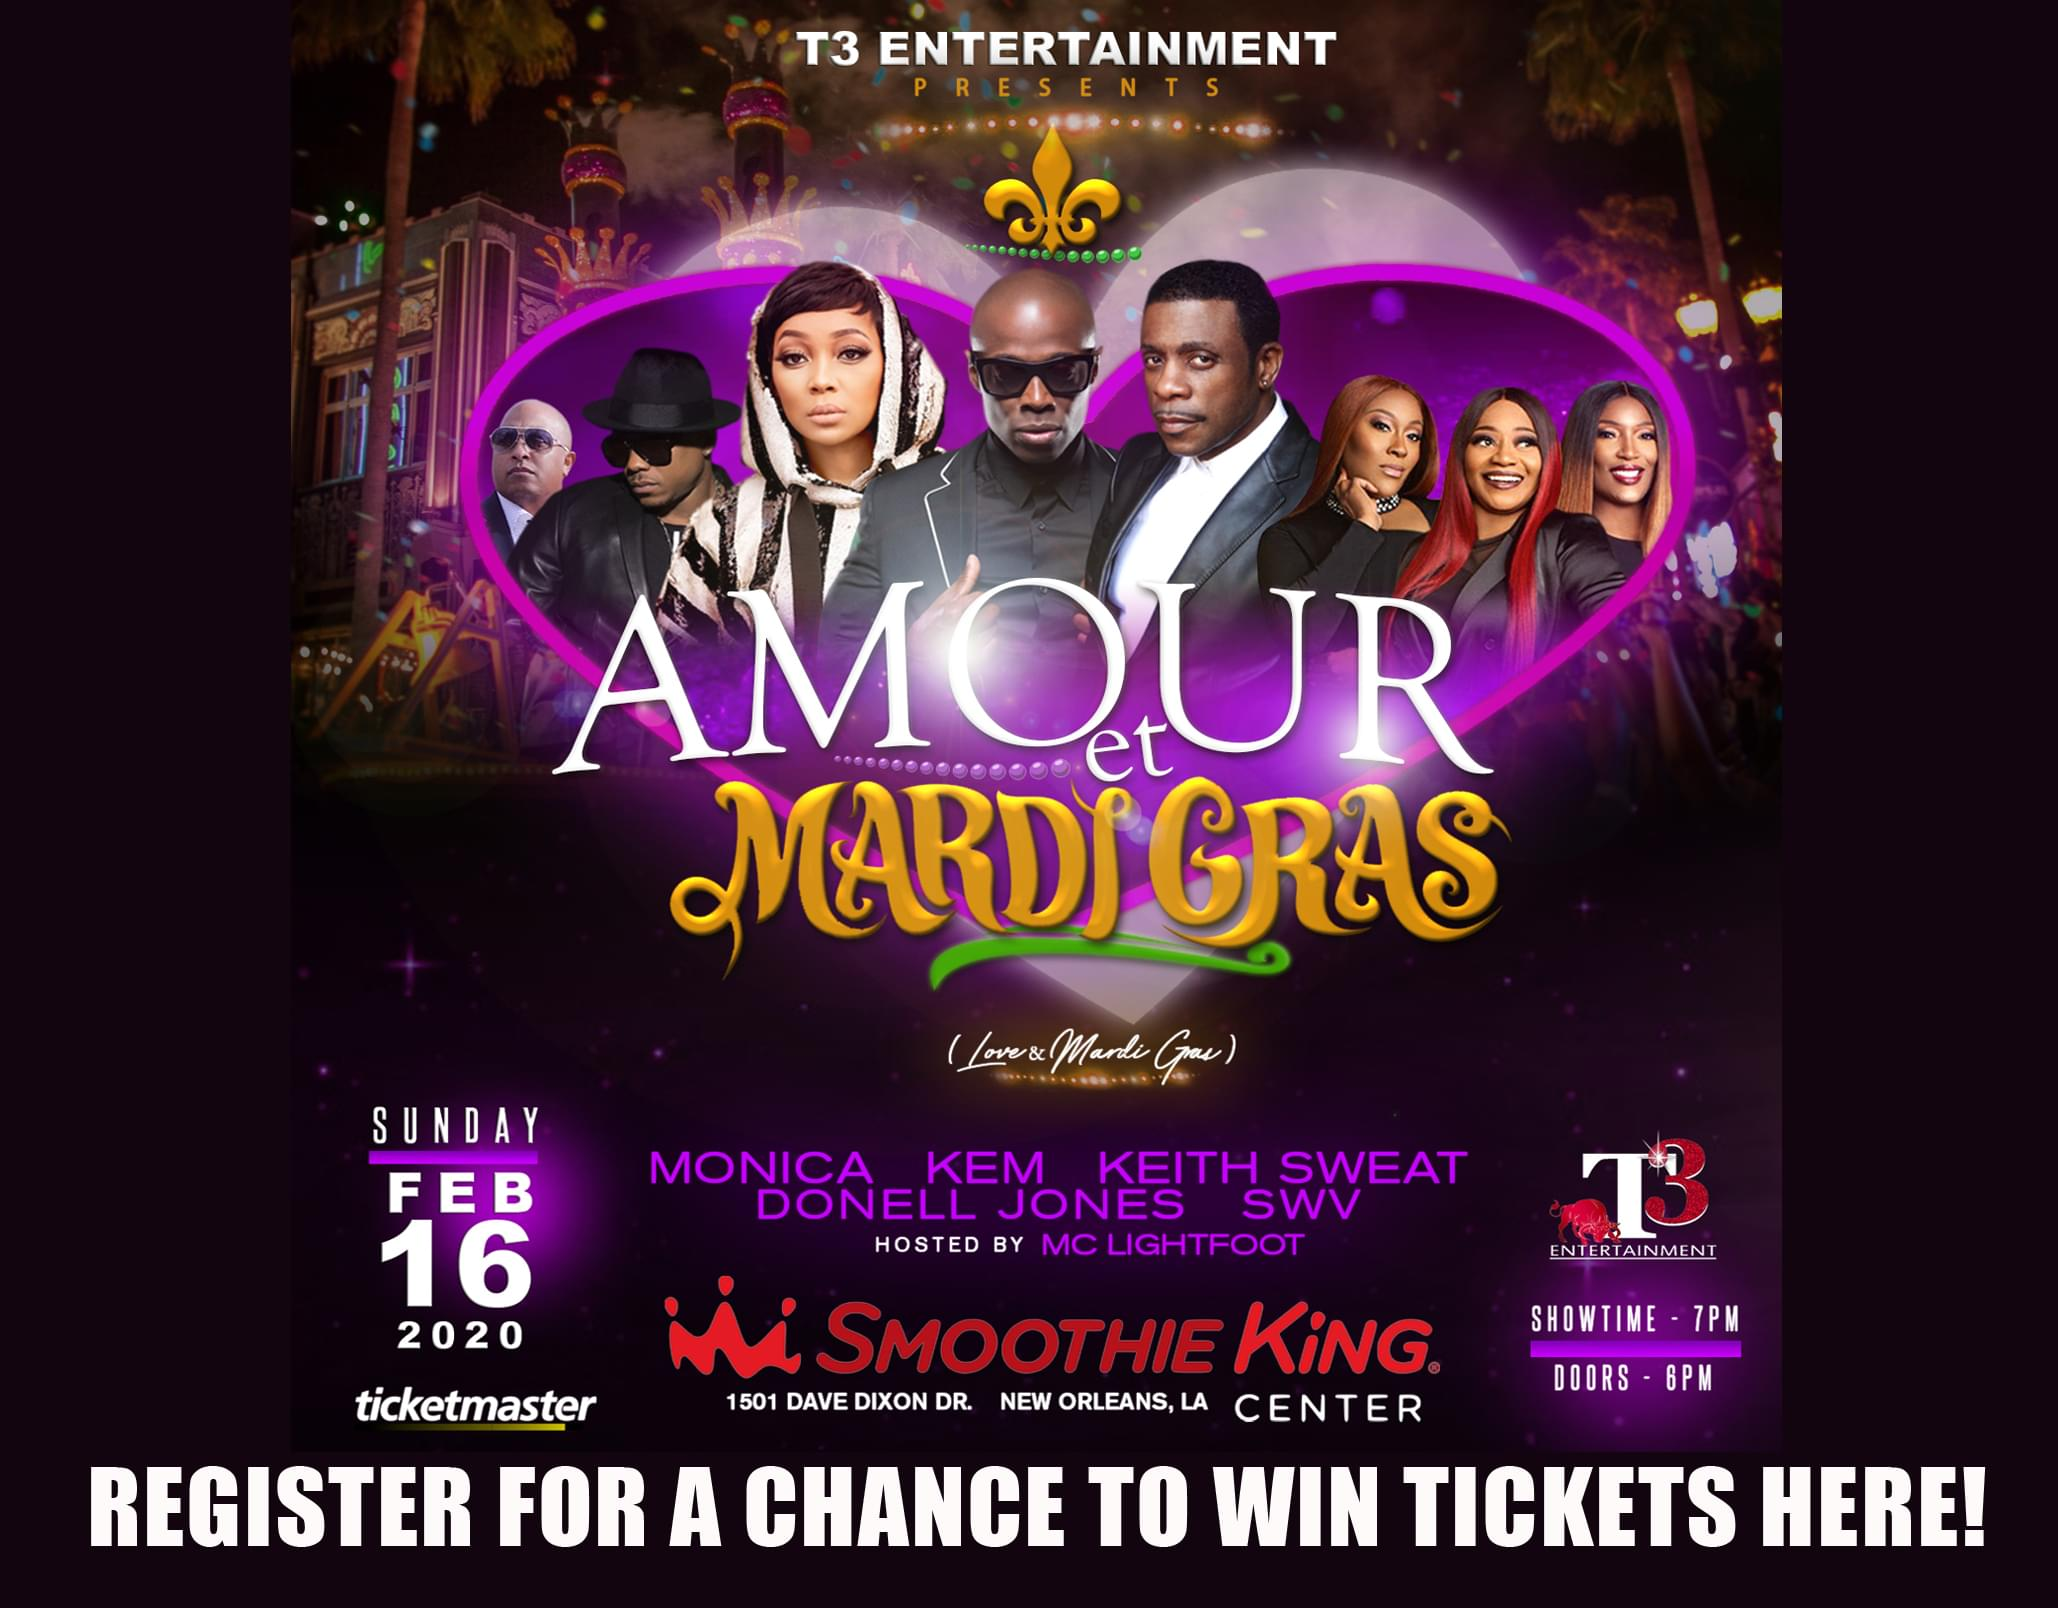 Enter to WIN Amour et Mardi Gras Tickets